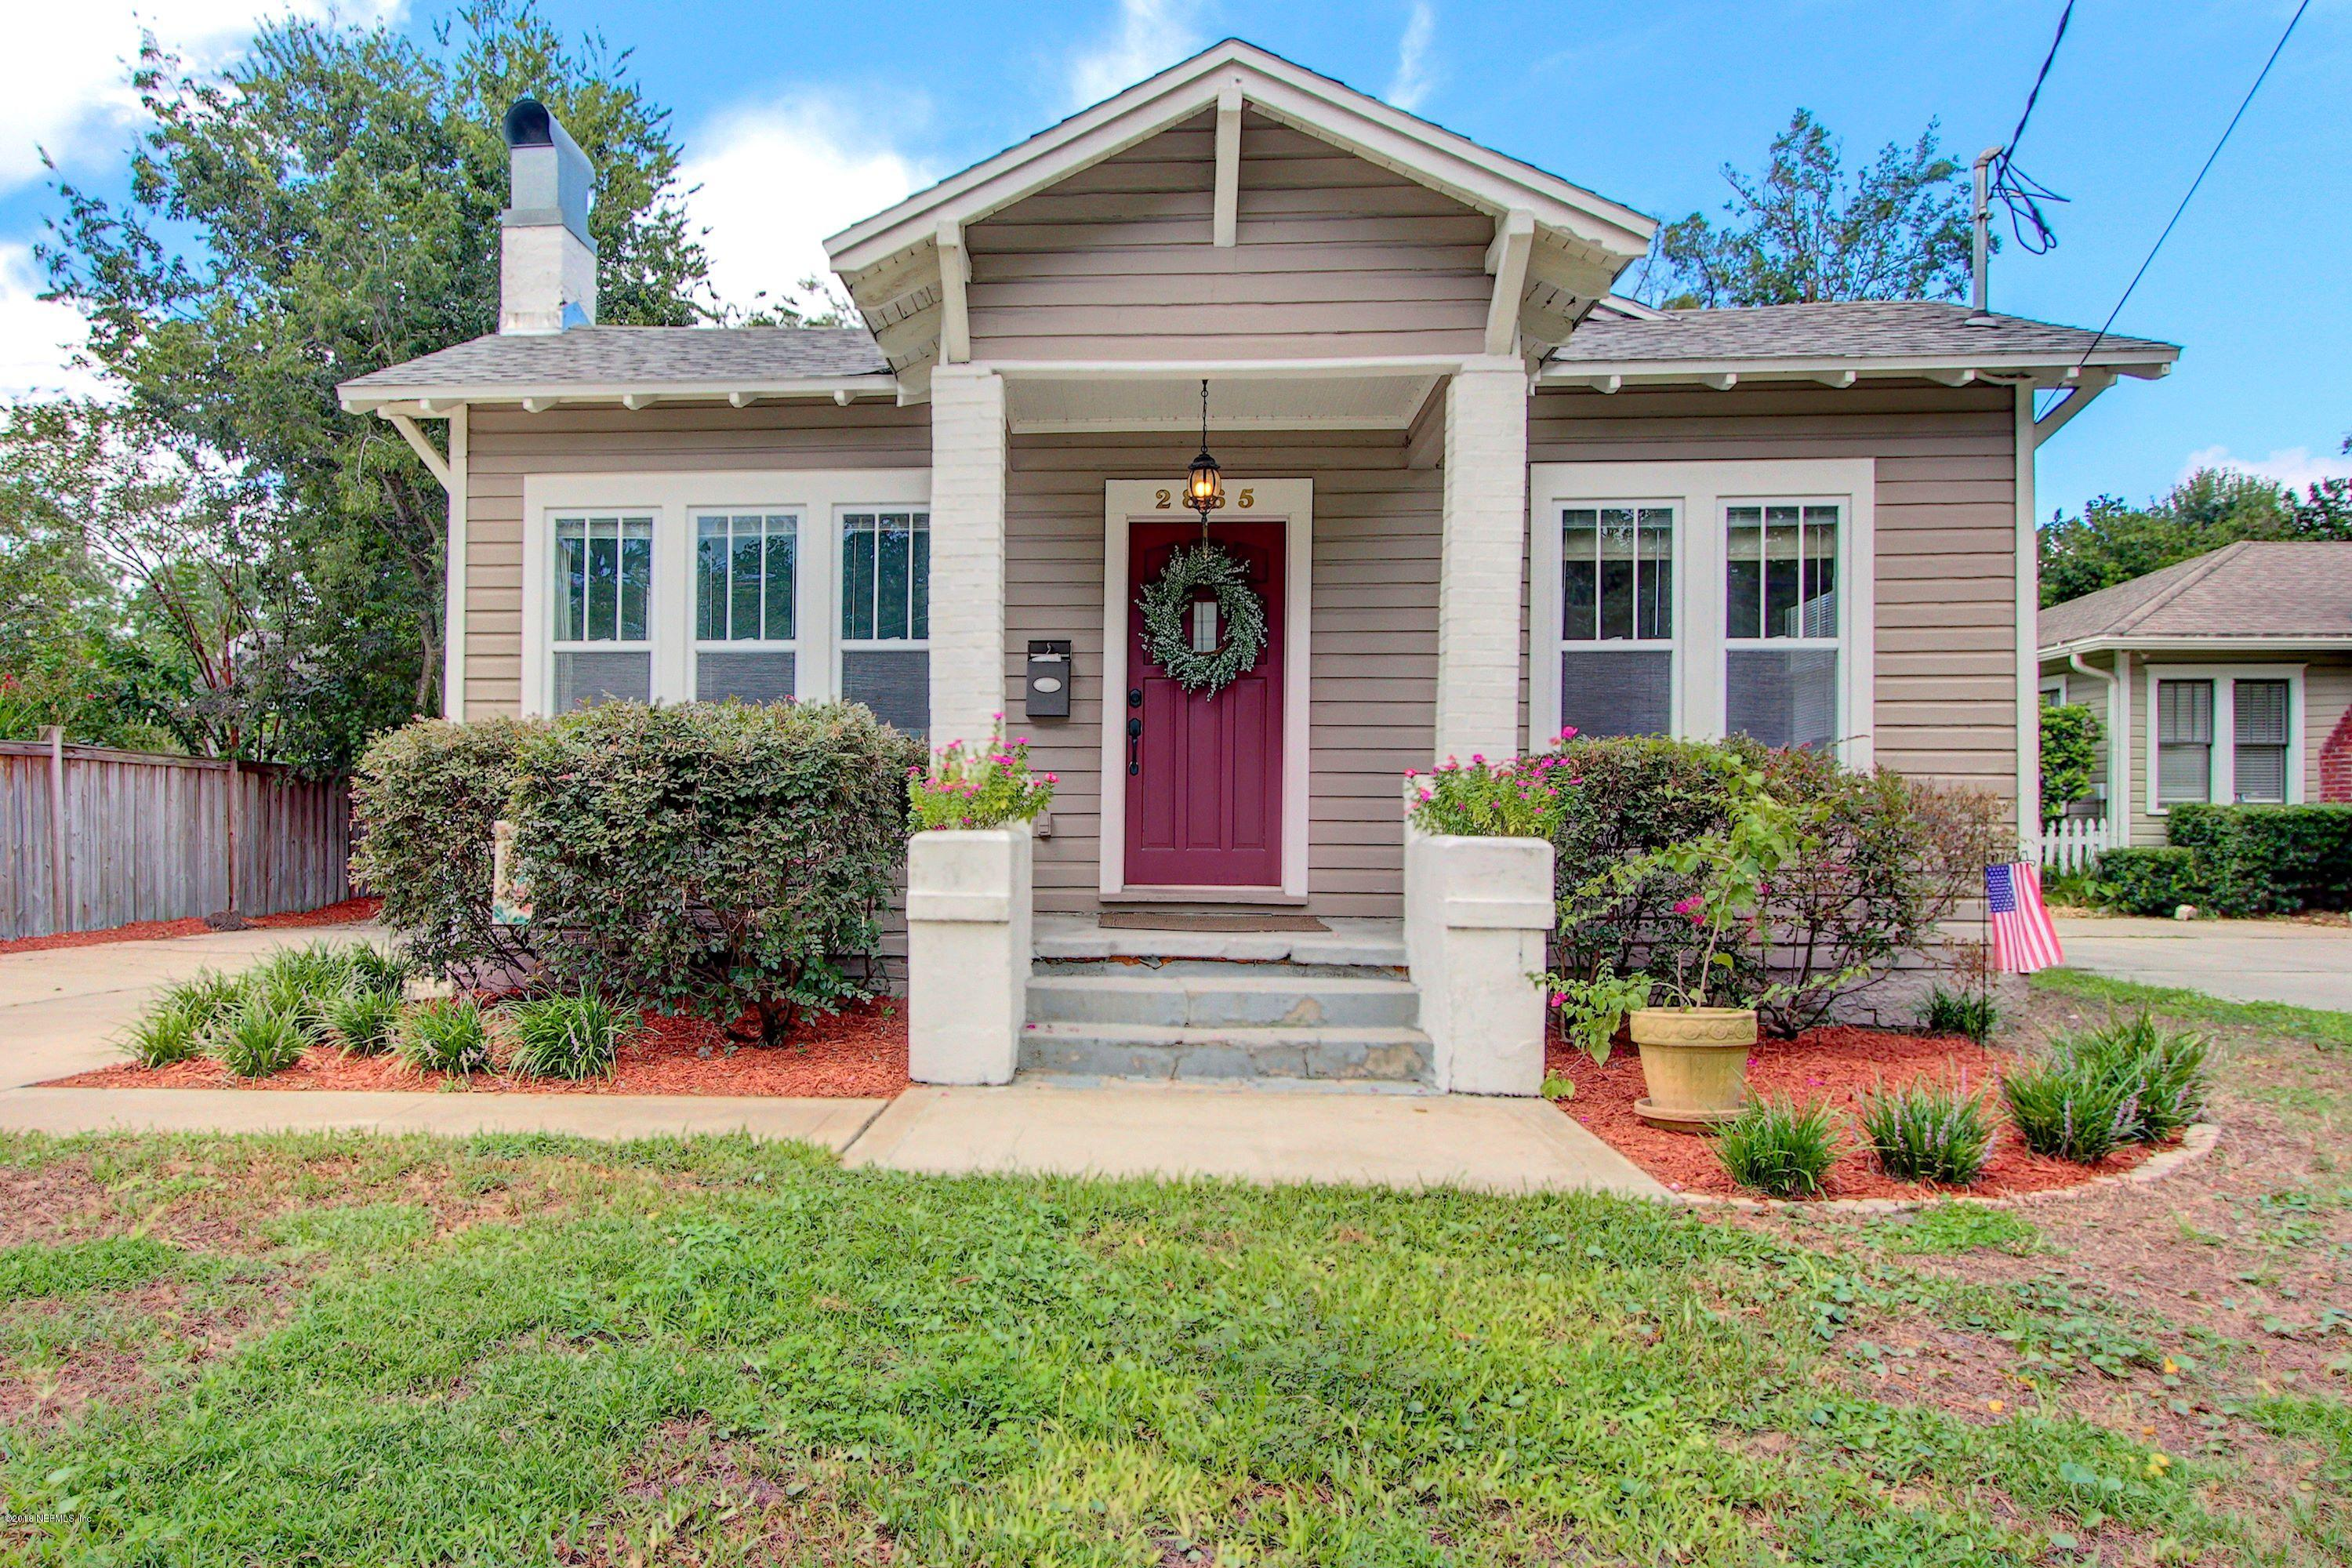 2865 DOWNING, JACKSONVILLE, FLORIDA 32205, 2 Bedrooms Bedrooms, ,1 BathroomBathrooms,Residential - single family,For sale,DOWNING,955161